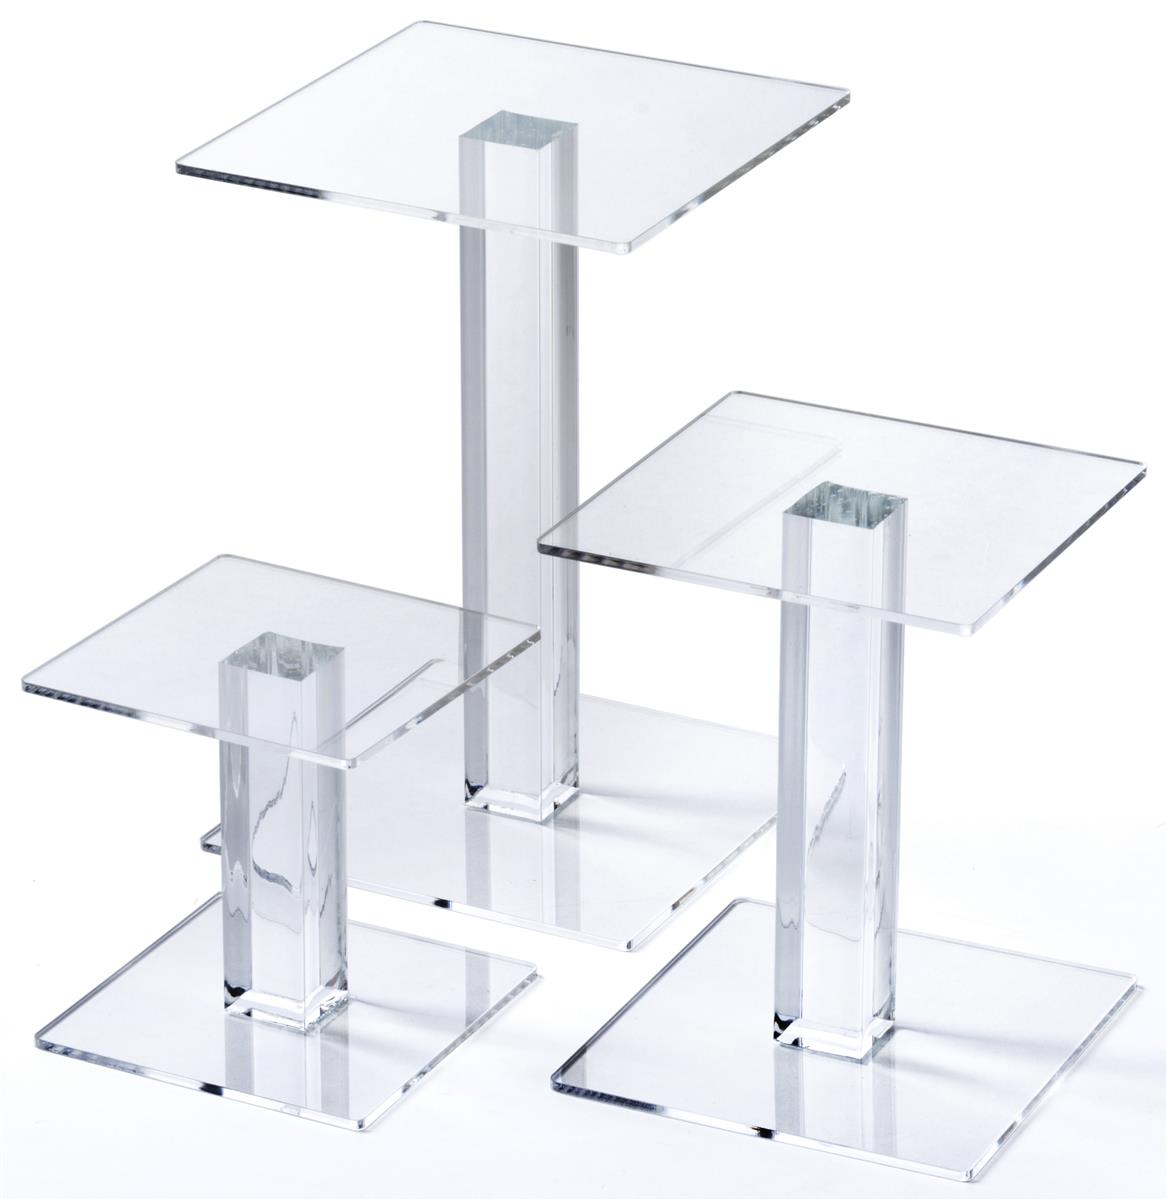 Tiered acrylic risers set of w square surface